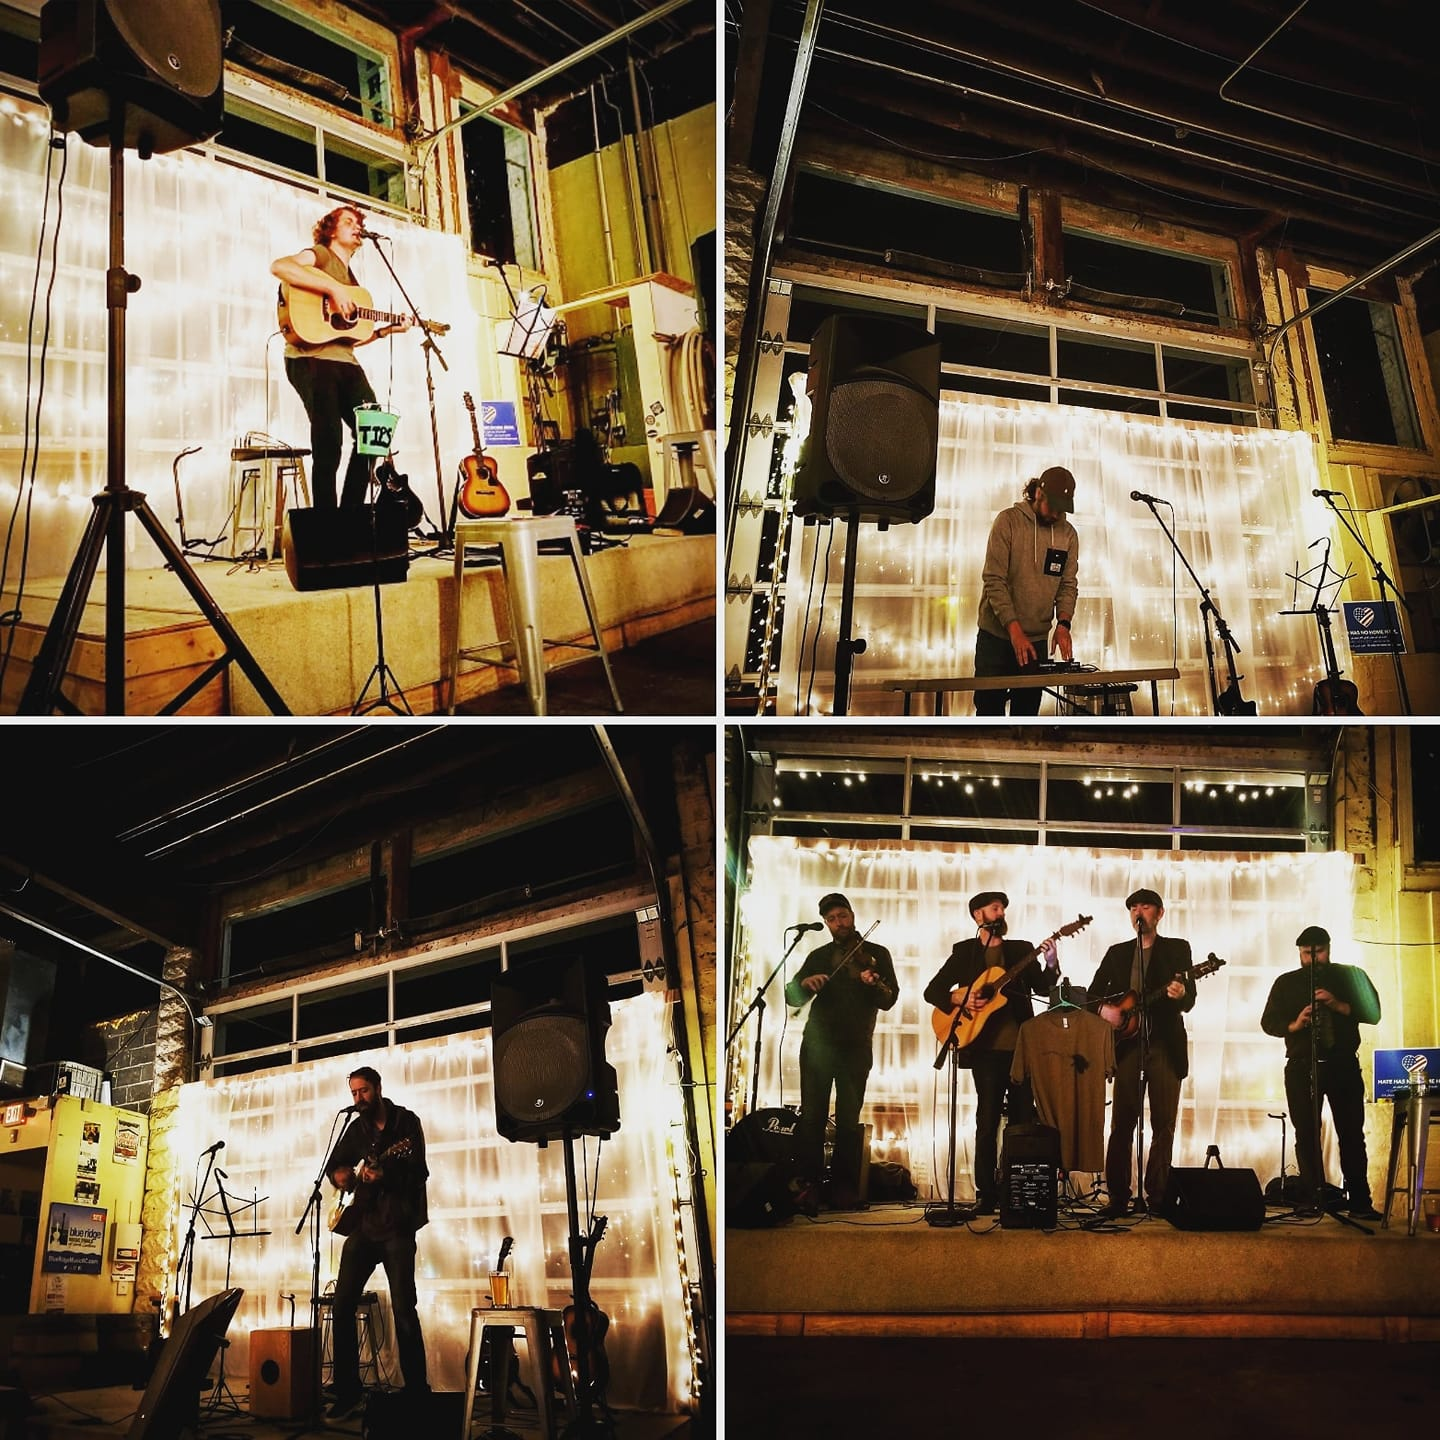 Open Mic Night - It Takes All Kinds - Oklawaha Brewing Company